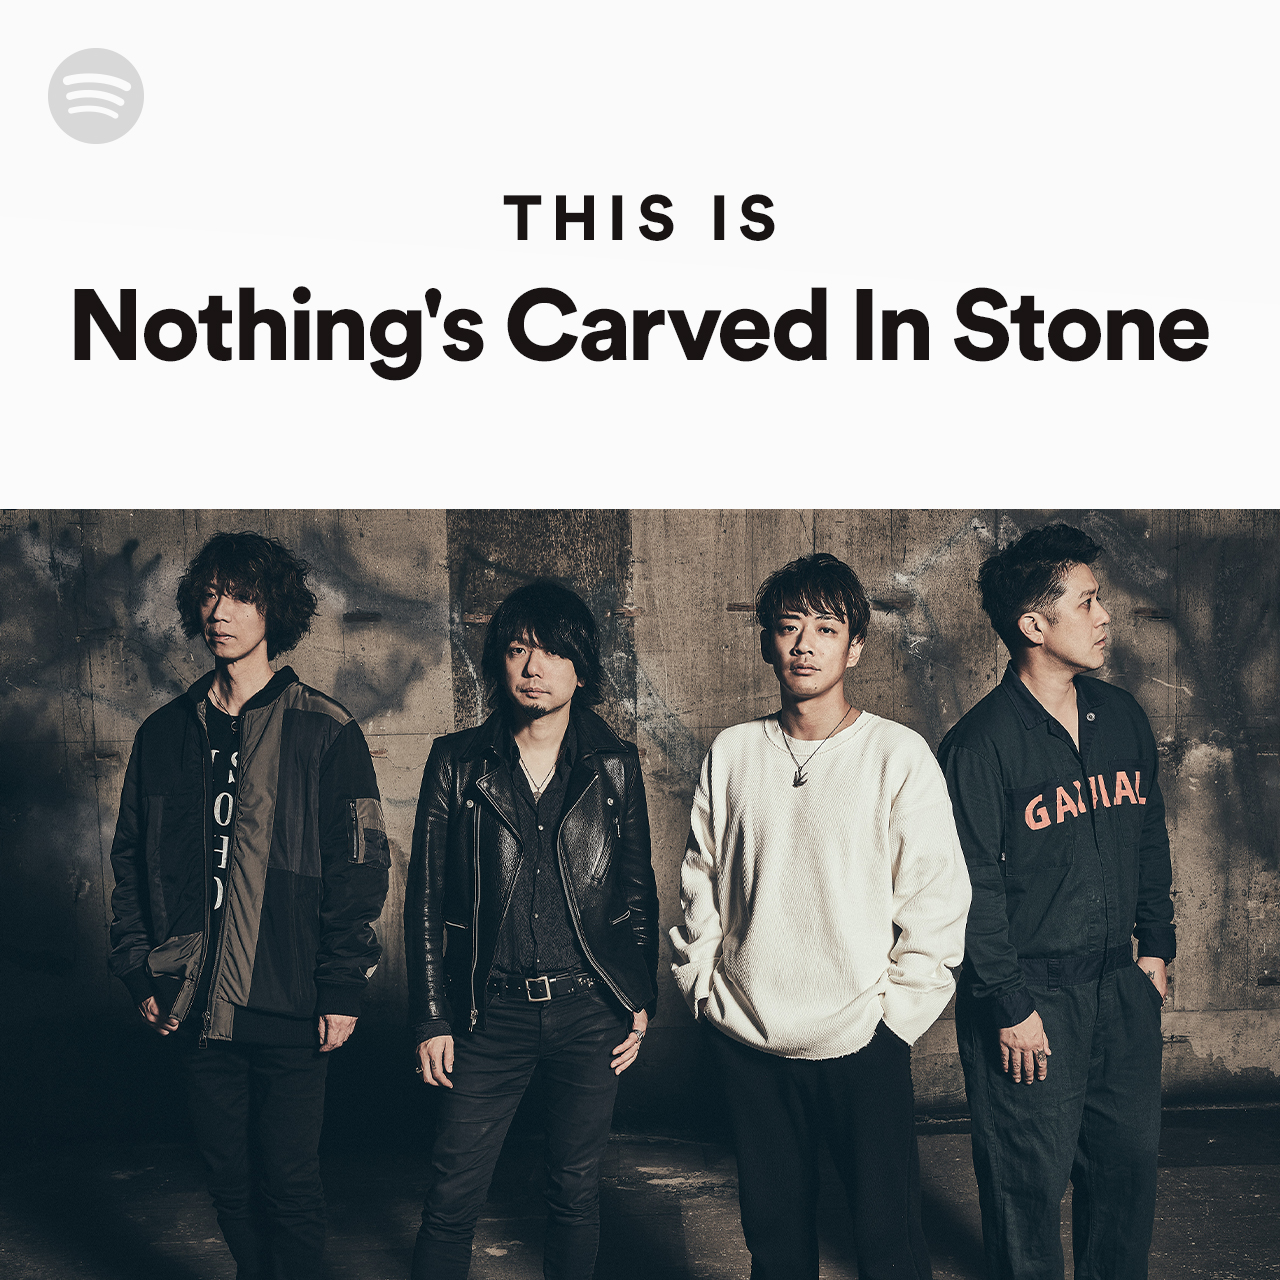 This Is Nothing's Carved In Stoneのサムネイル